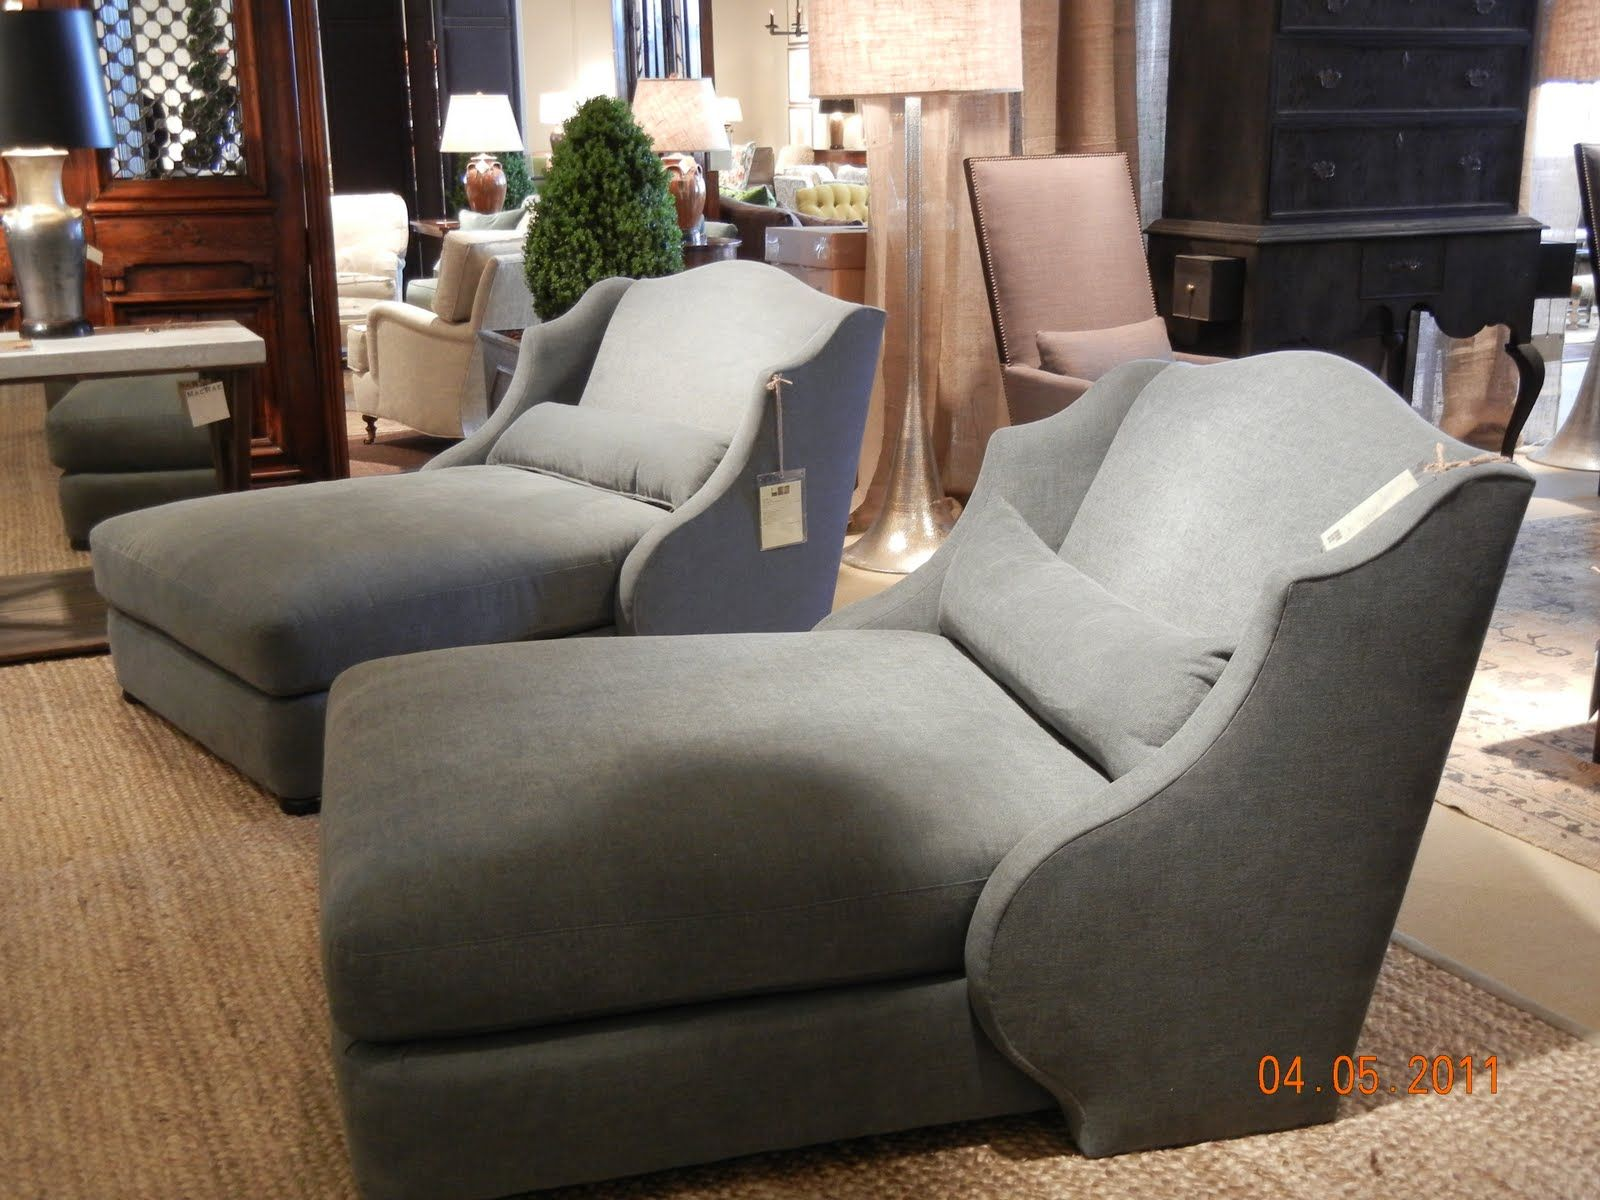 TV Lounger Chaises By Lee Industries   Maybe Mark Would Find This An  Acceptable Alternative To A Recliner